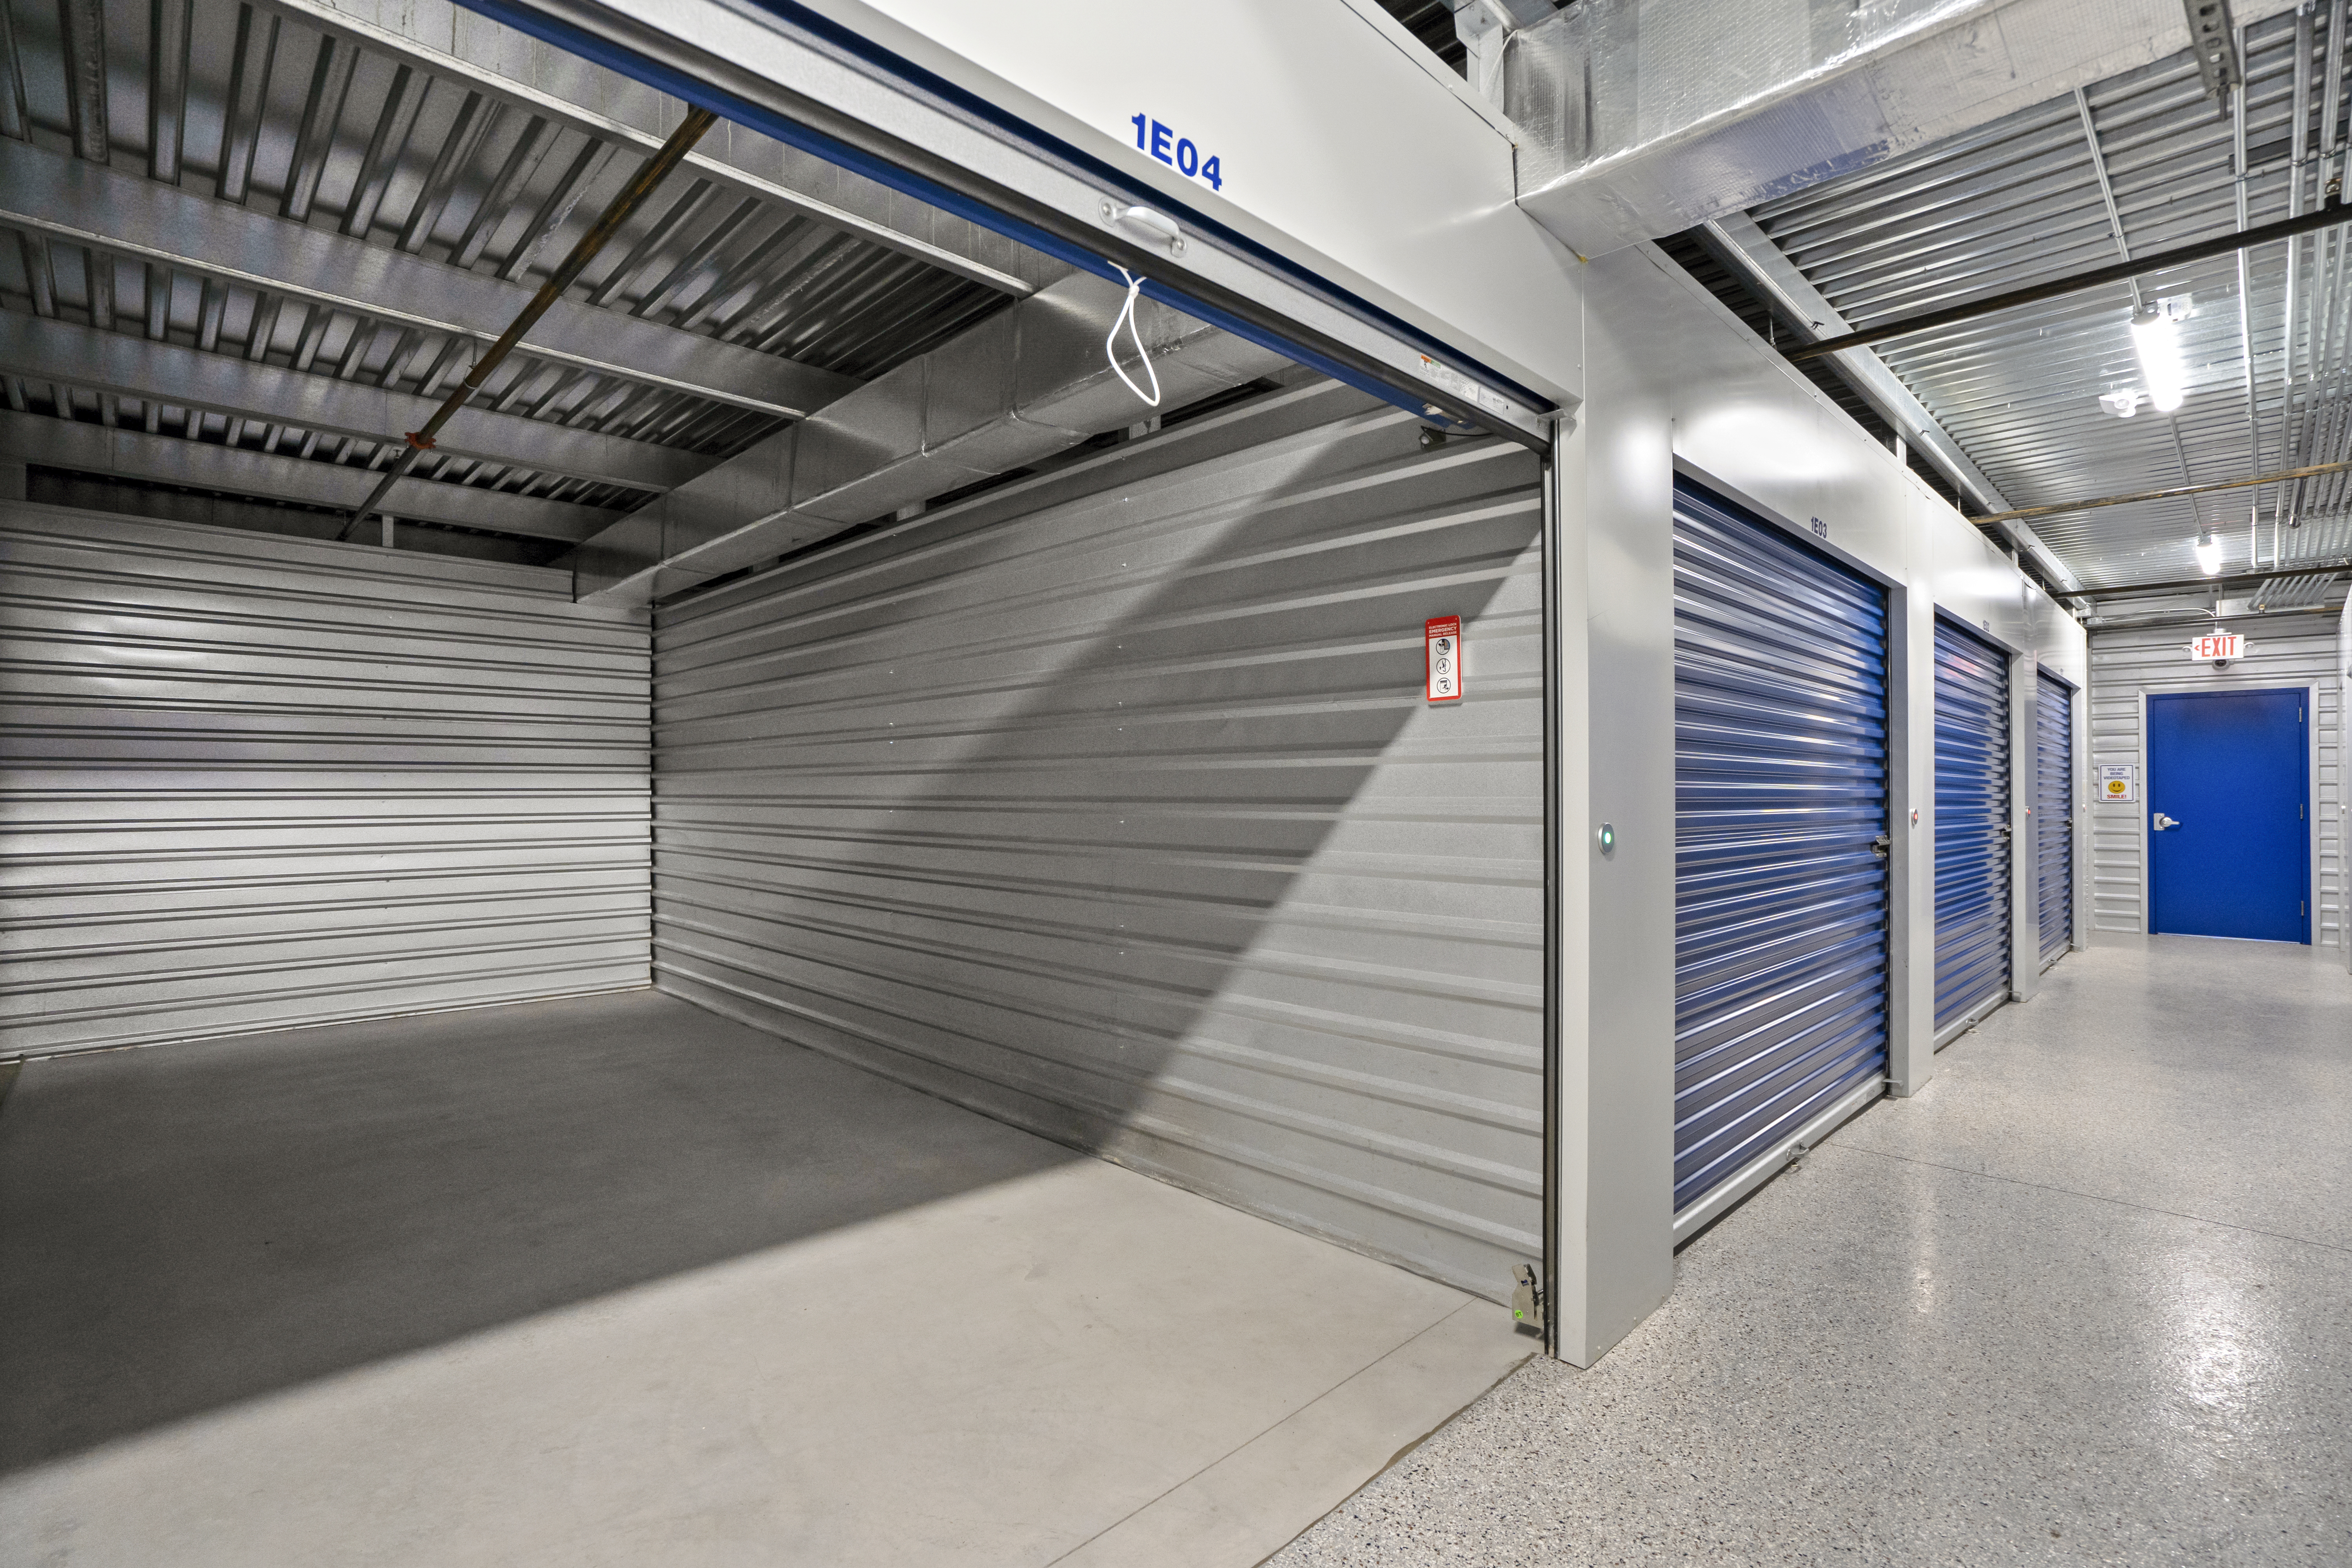 large interior storage unit with door open